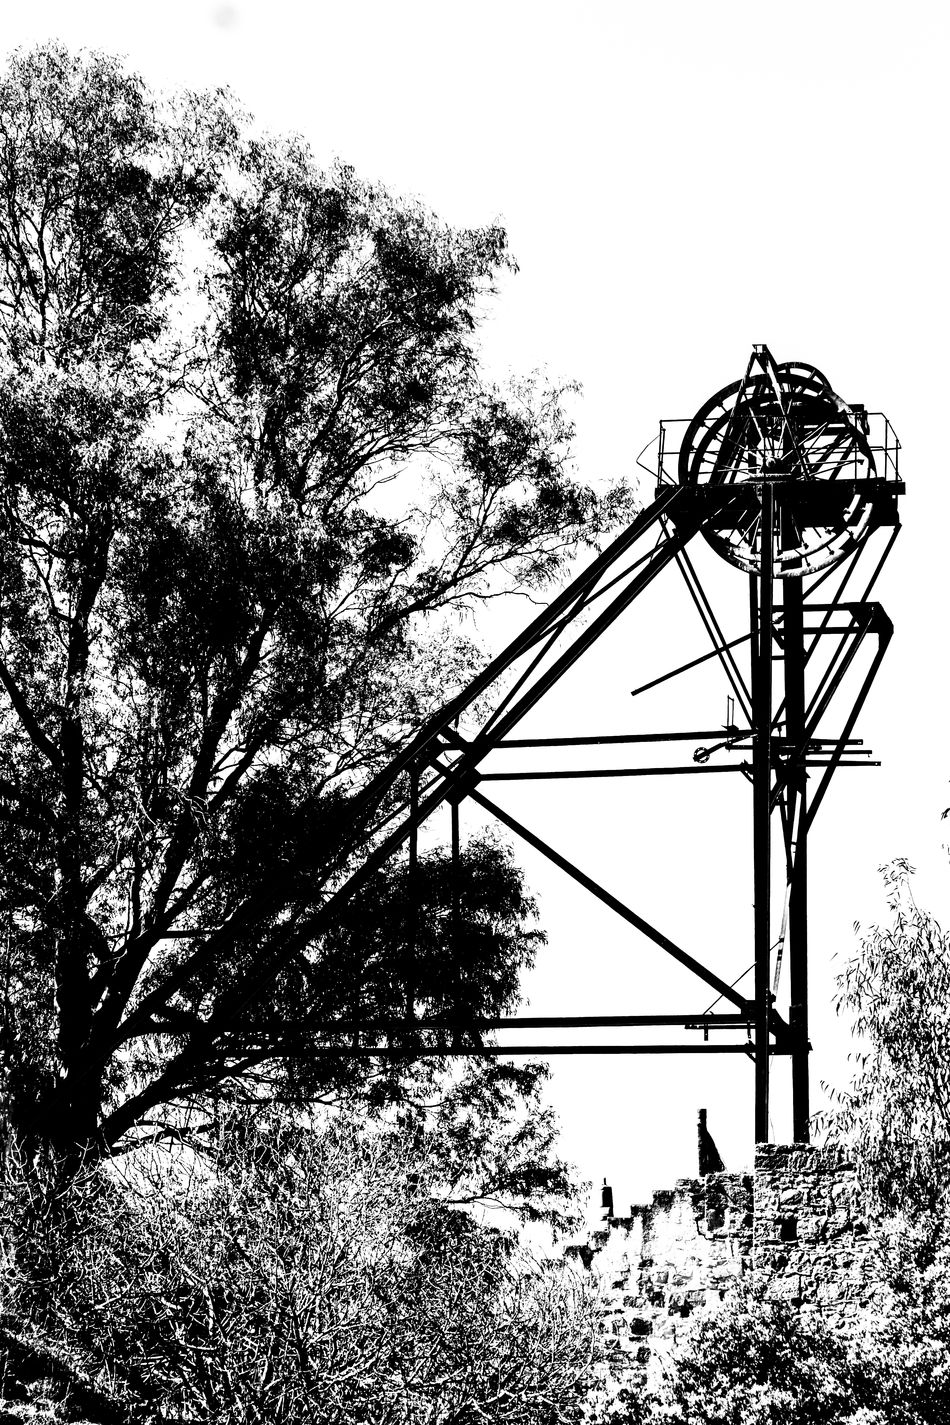 Amusement Park Amusement Park Ride Arts Culture And Entertainment Clear Sky Day Linares Low Angle View Minas Minas De Linares Minería Minería De Linares Mining Mining Heritage Mining Industry Mining Town Nature No People Outdoors Ride Sierra Morena Sky Tree Water Slide